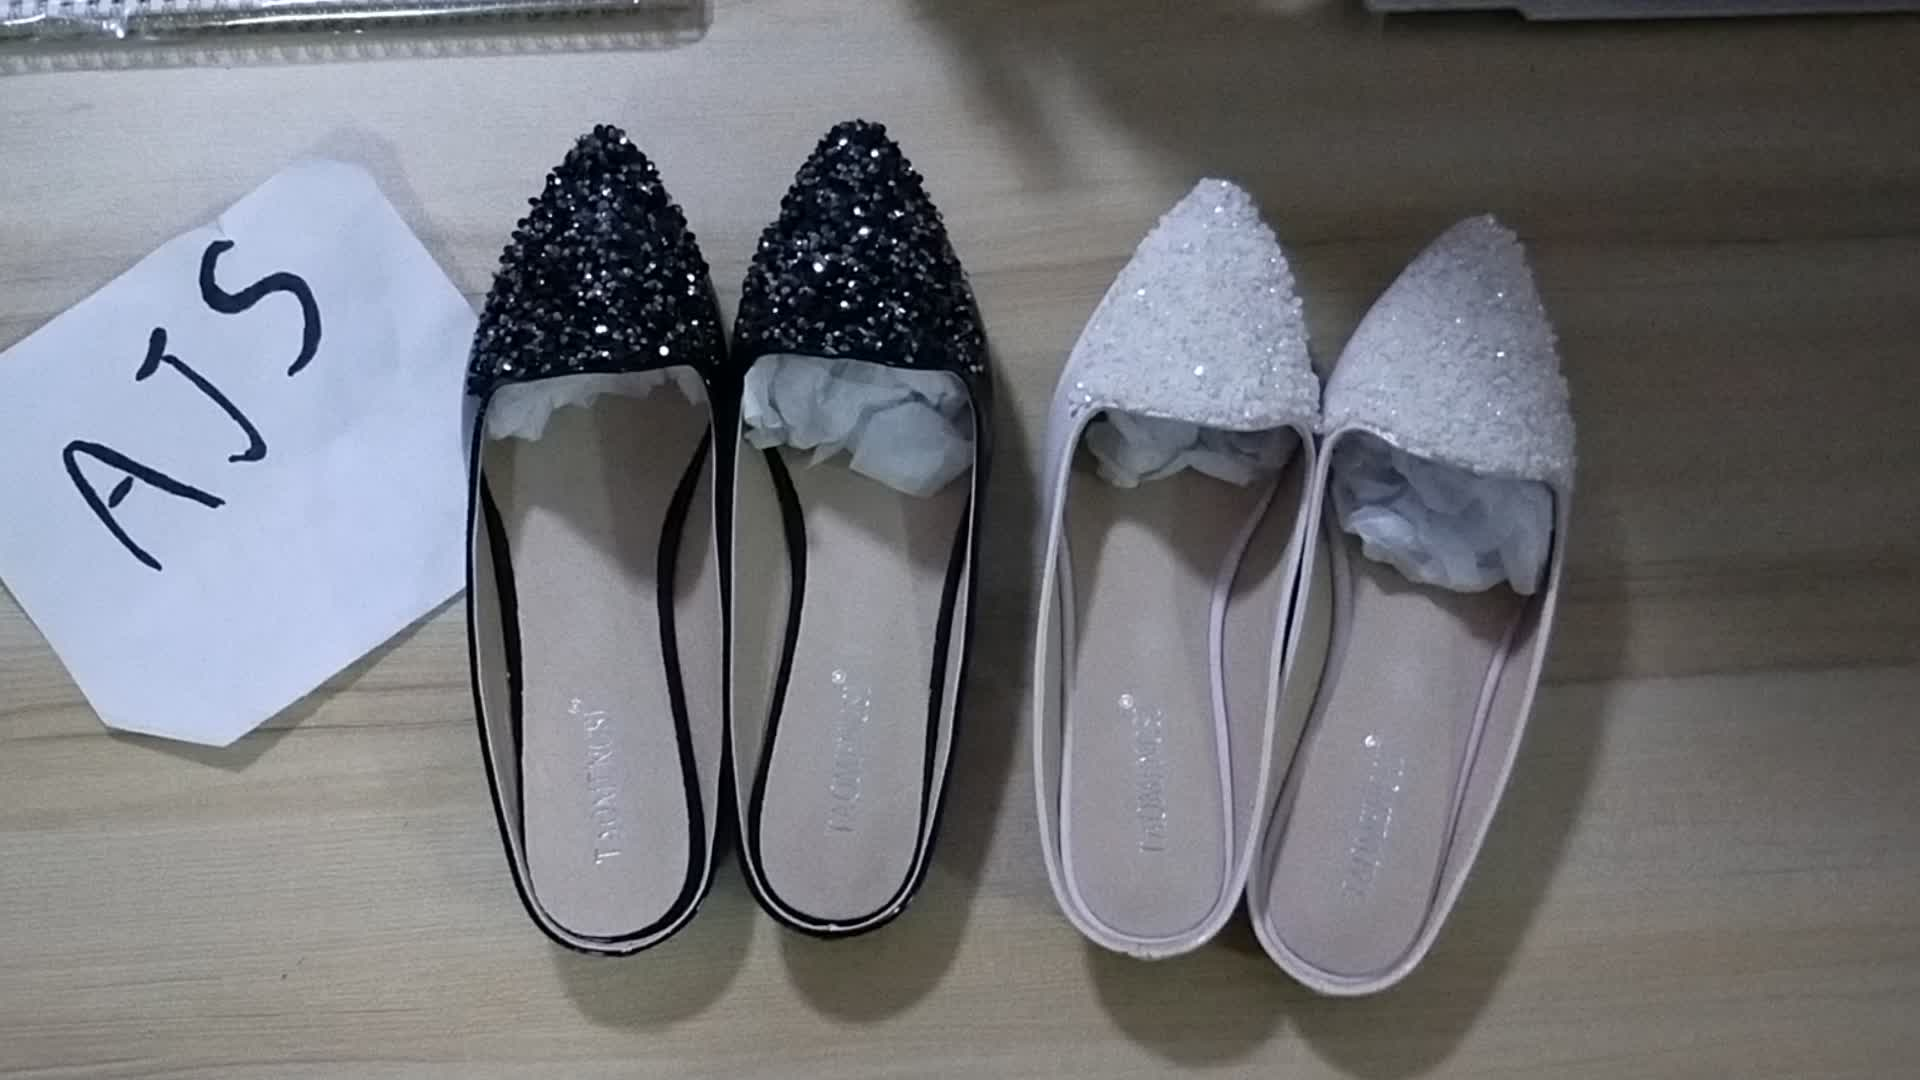 SS0308 Fancy girl pu slippers in size 43 ladies casual loafer mules shoes pu sandals 2019